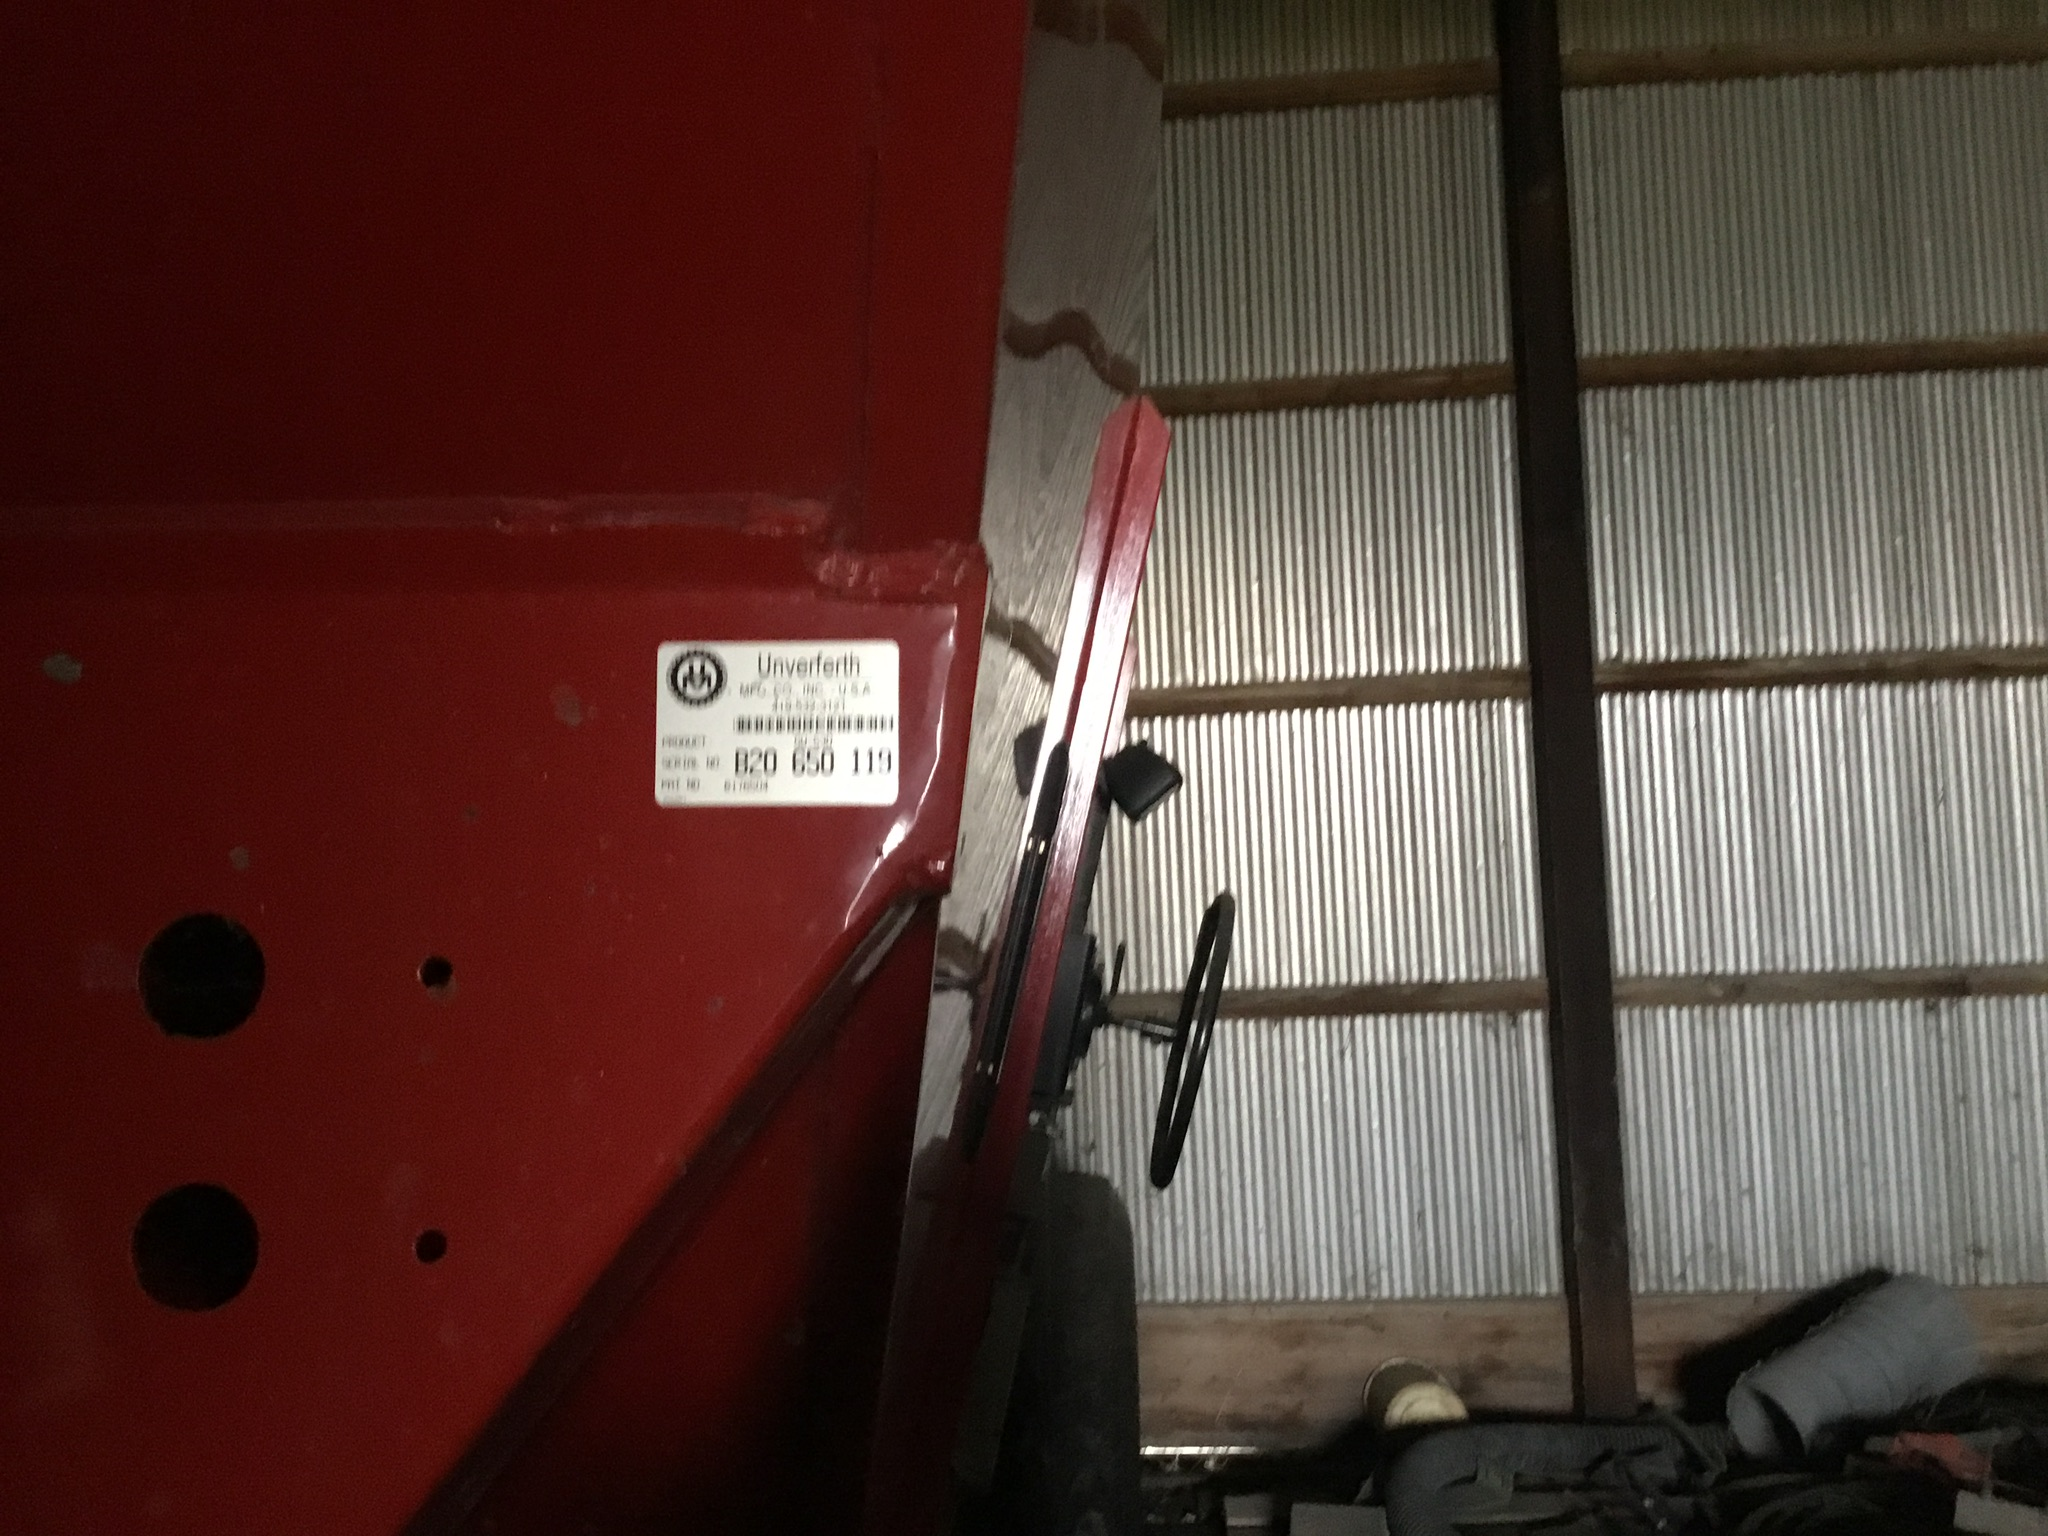 Unverferth 530 Side Dump Wagon, Brakes, 425-65R-22.5 Tires, Serial #B206-50-119, Red, Sharp - Image 2 of 6